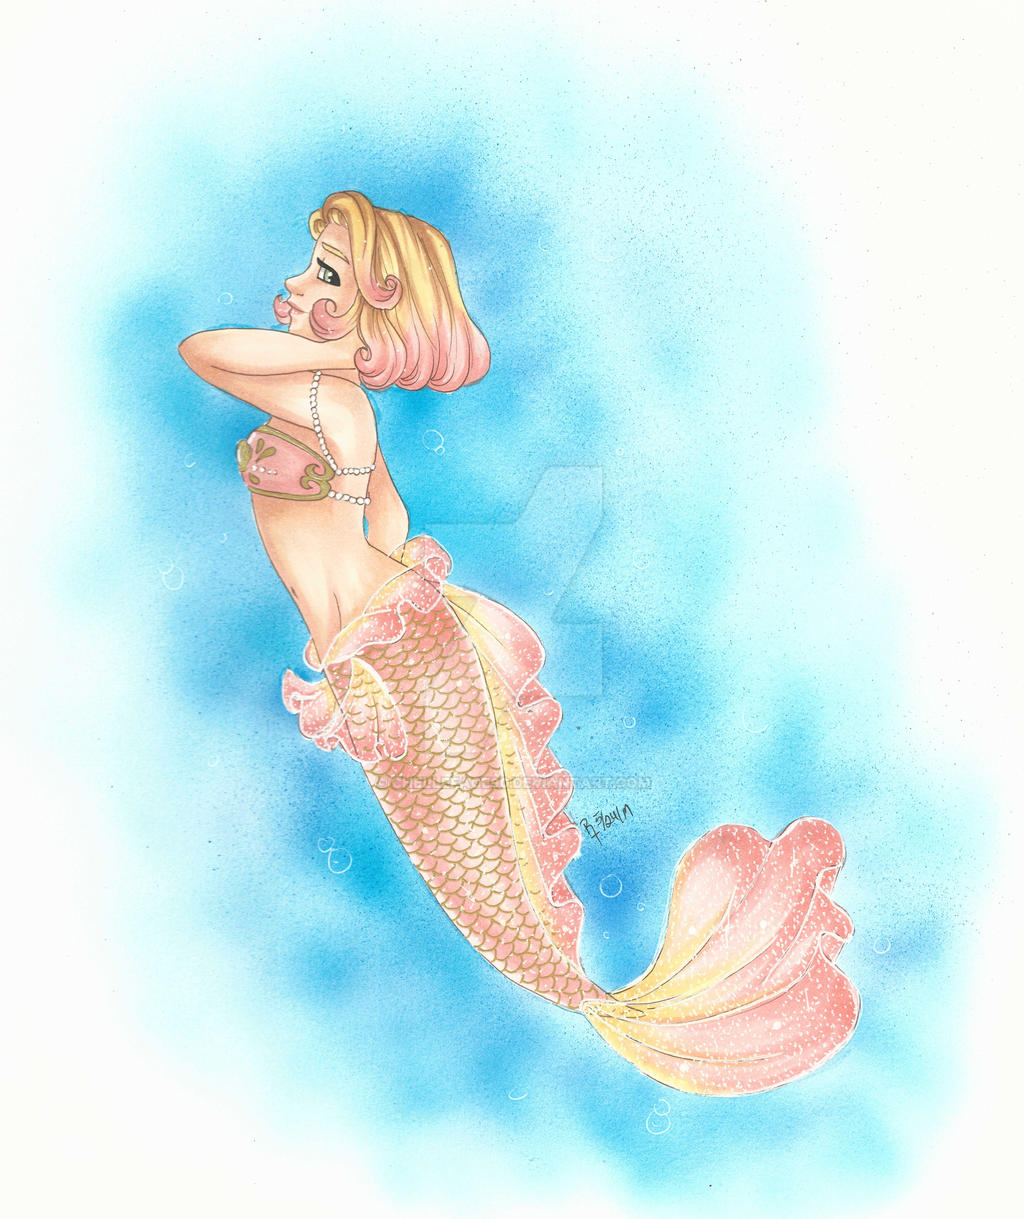 Day 21: Human as a Mermaid by chelleface90 on DeviantArt